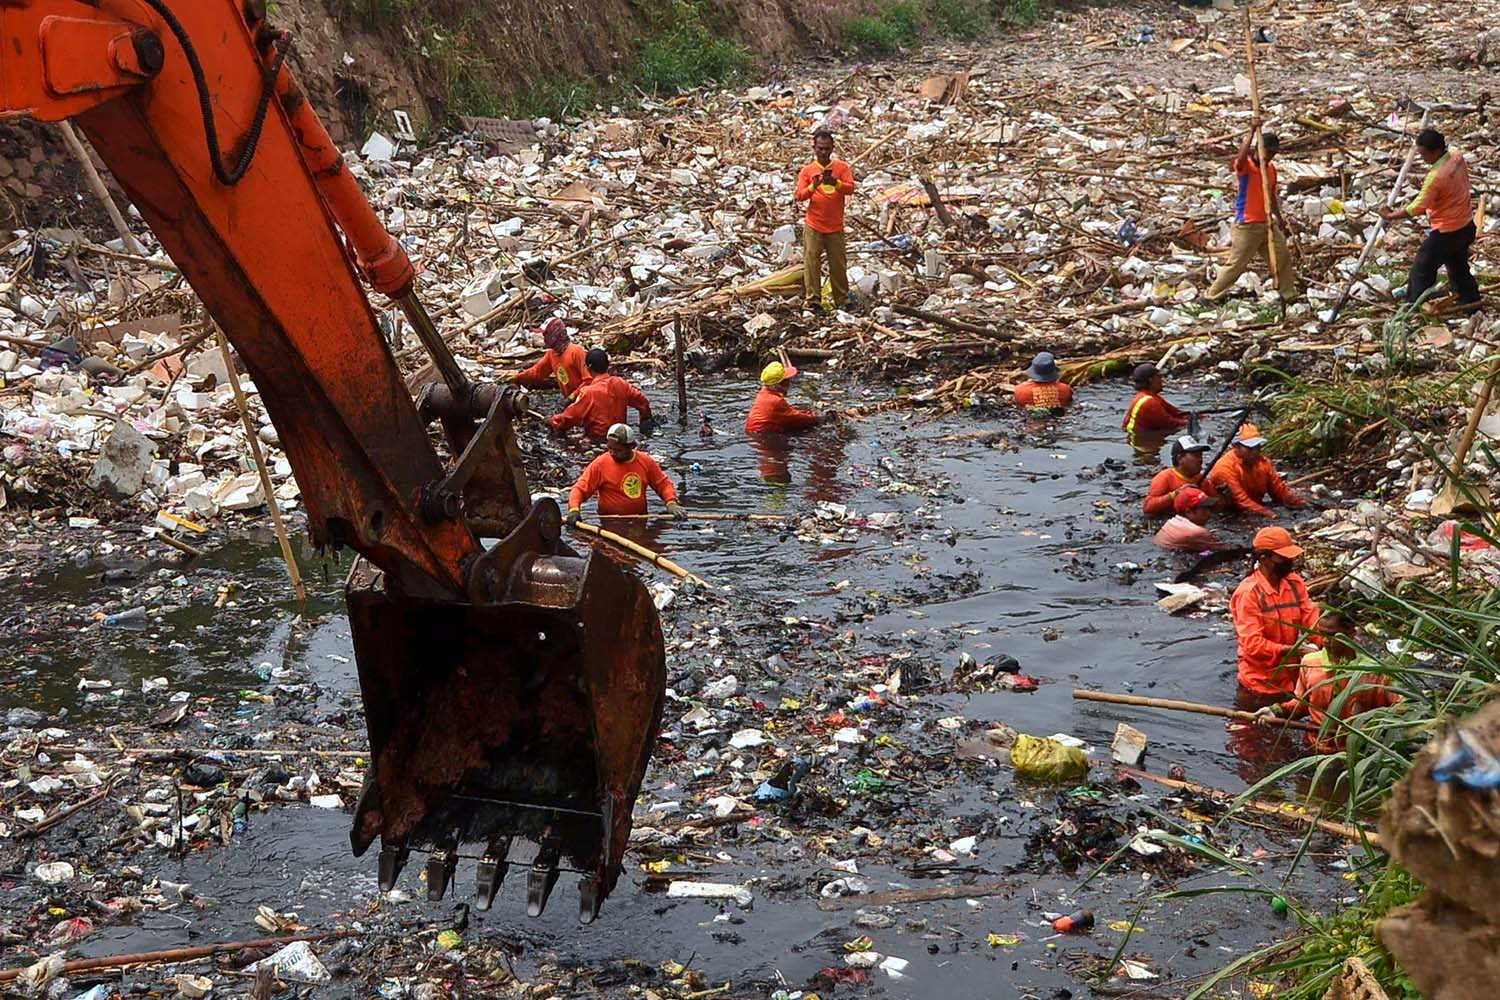 Workers clean up tons of waste from Pete river in Bekasi, West Java, on Nov. 12. REZAS/AFP via Getty Images